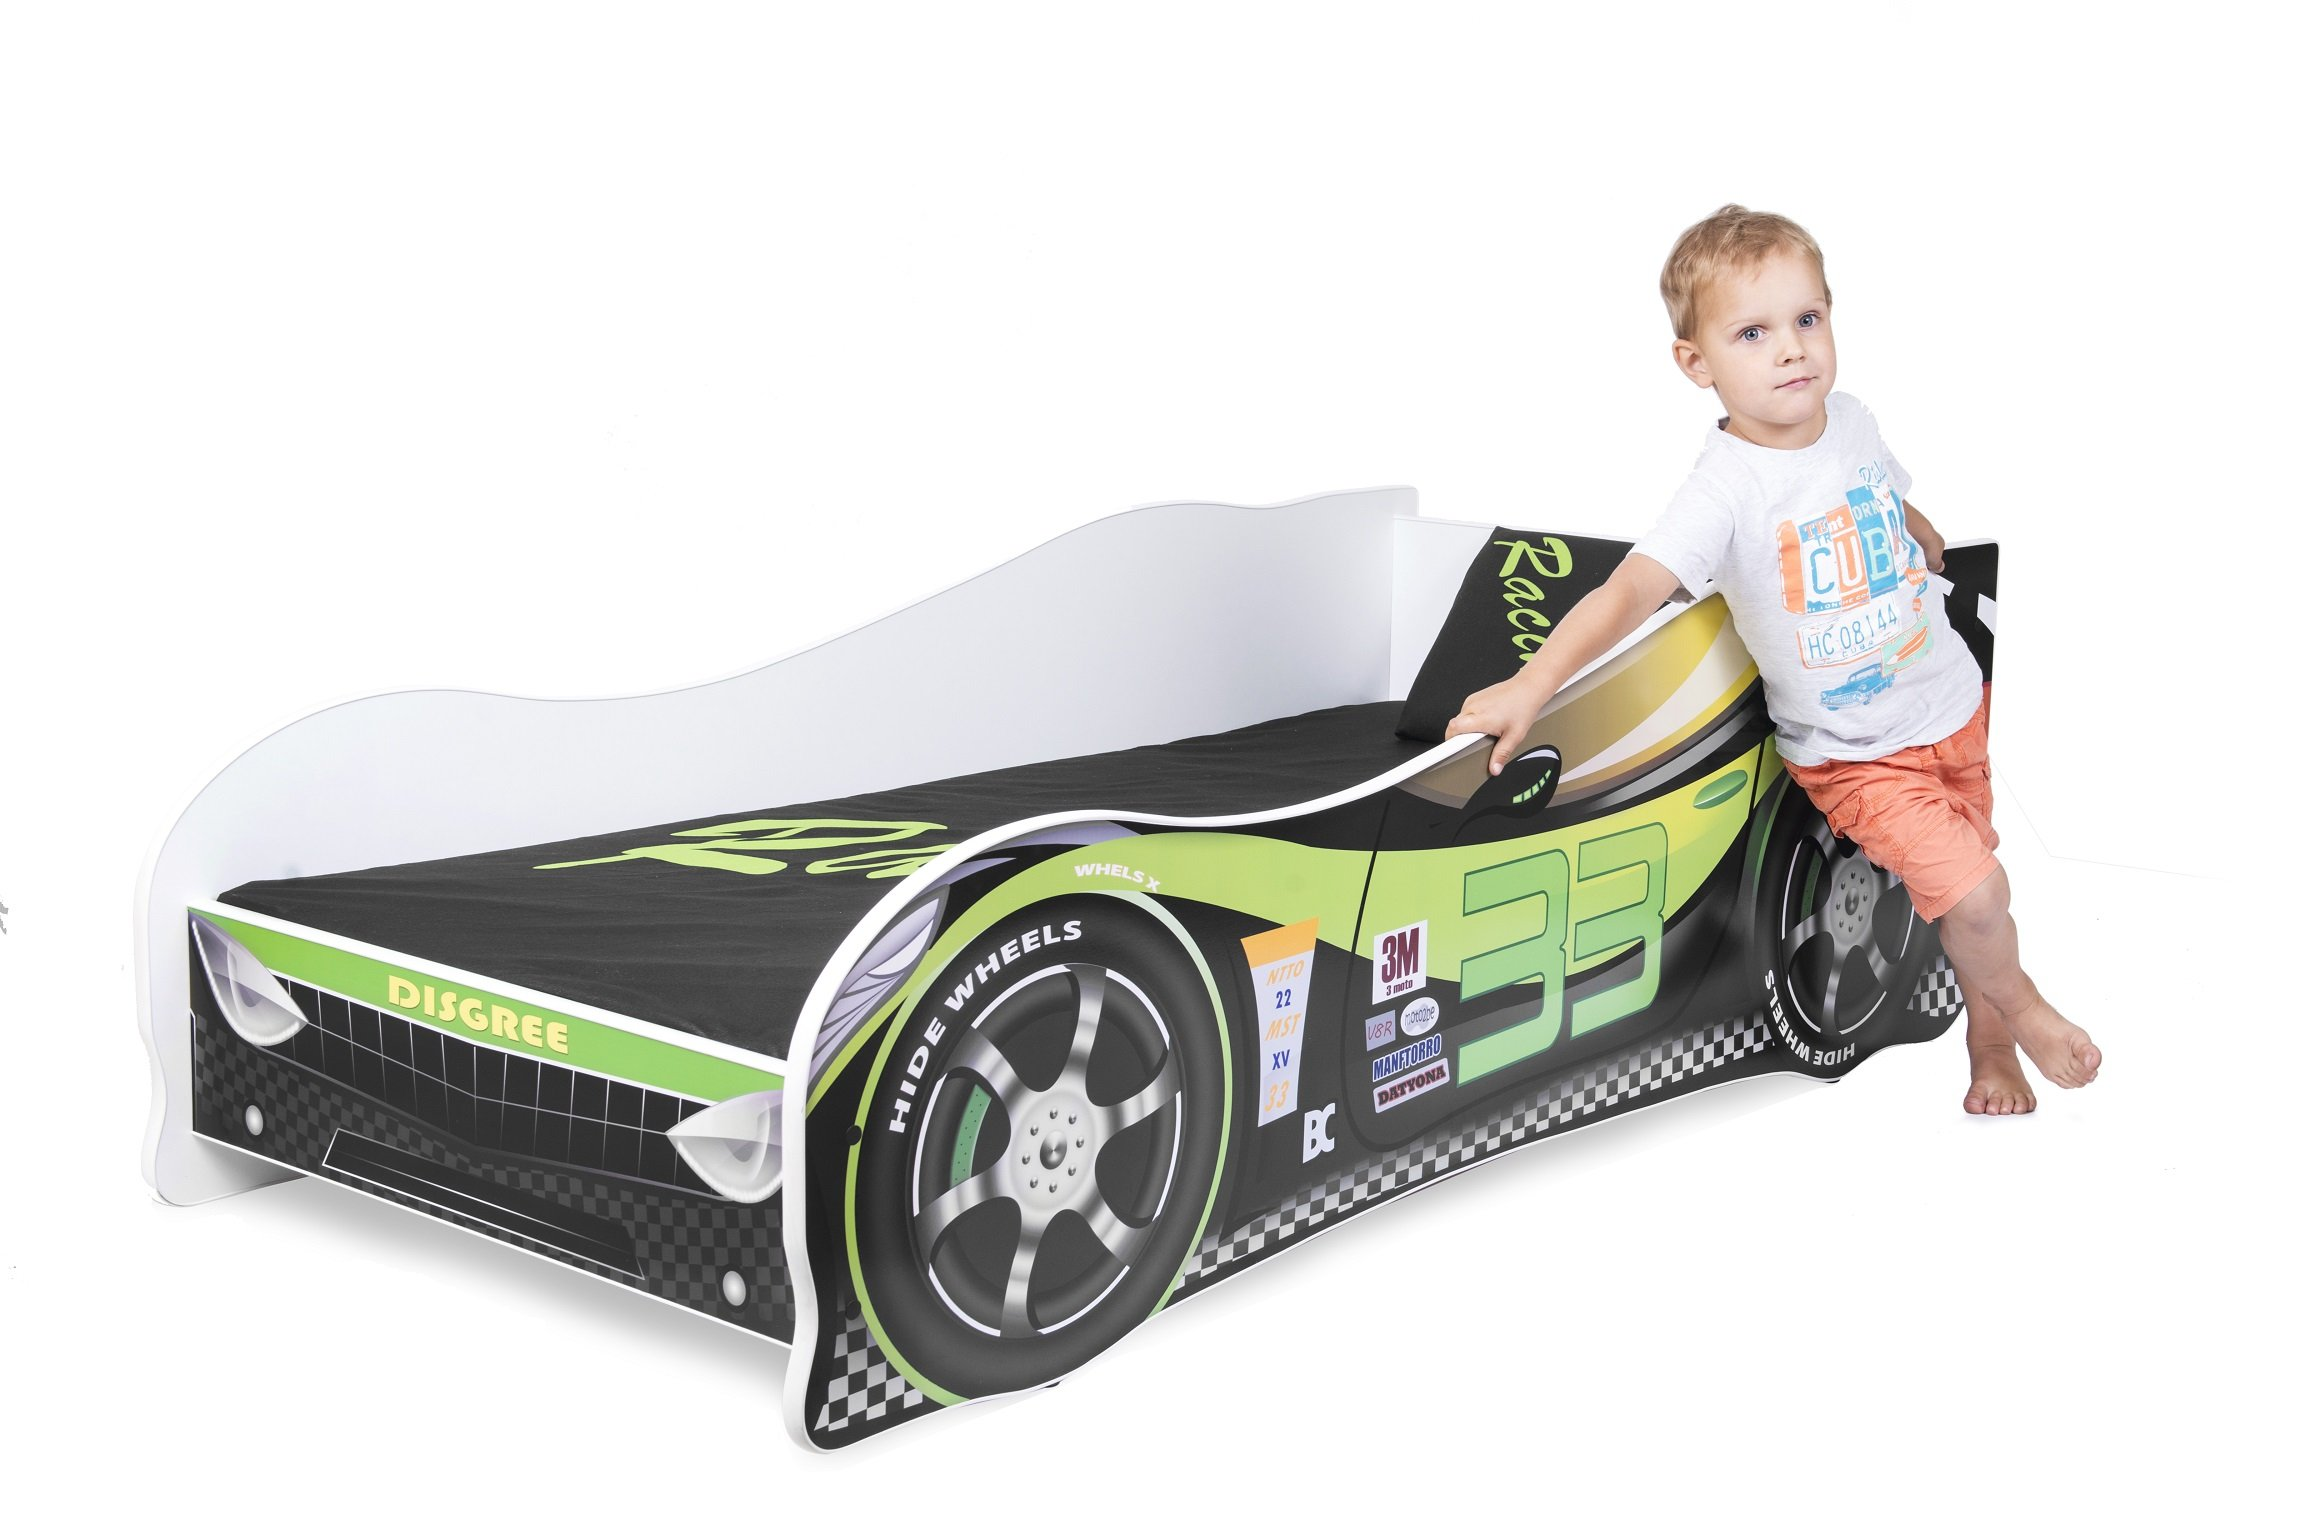 Sale +++ The Best Quality Baby Kids Bed Toddler Car Junior Bed with Mattress 140 x 70 cm 160 x 80 cm 180 x 80 cm (140x70cm Untill 5 Jears, Green) Nobiko Kids Bed + Foam Mattress in 3 Sizes: 140 x 70 cm untill 5 jears 160 x 80 cm untill 8 jears 180 x 80 cm untill 12 jears Greengard Gold - Product certified for law chemical emissions Ecologo - Product certified for reduced environmental impact 7